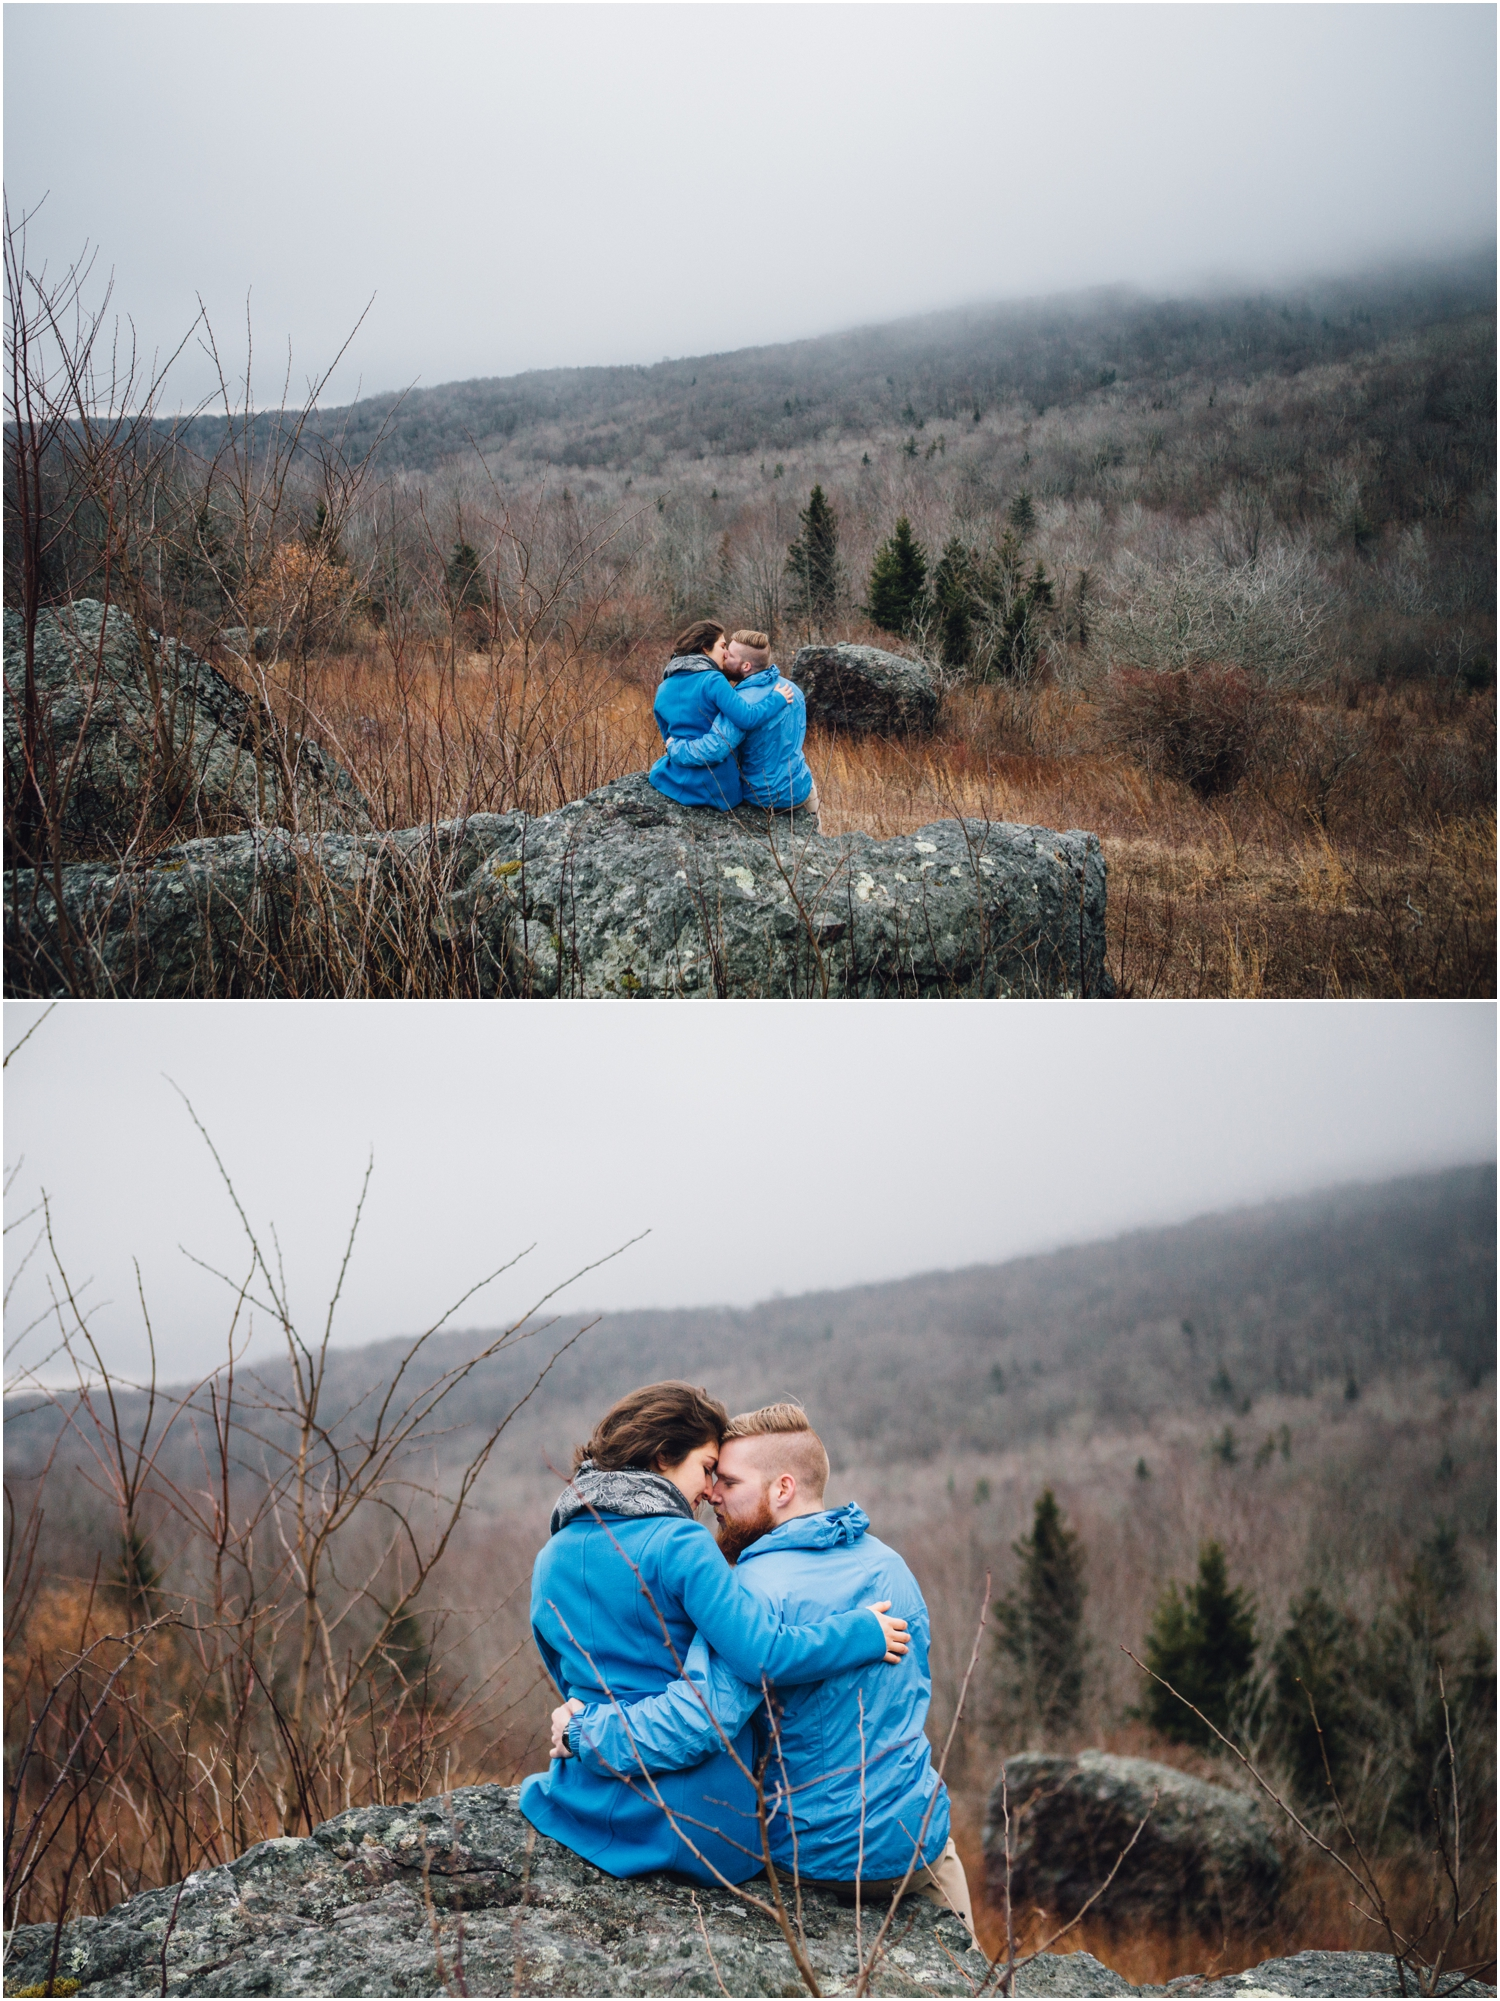 katy-sergent-photography-grayson-highlands-engagement-session-mouth-of-wilson-virginia-damascus-appalachian-trail-tennessee-wedding-elopement_0025.jpg